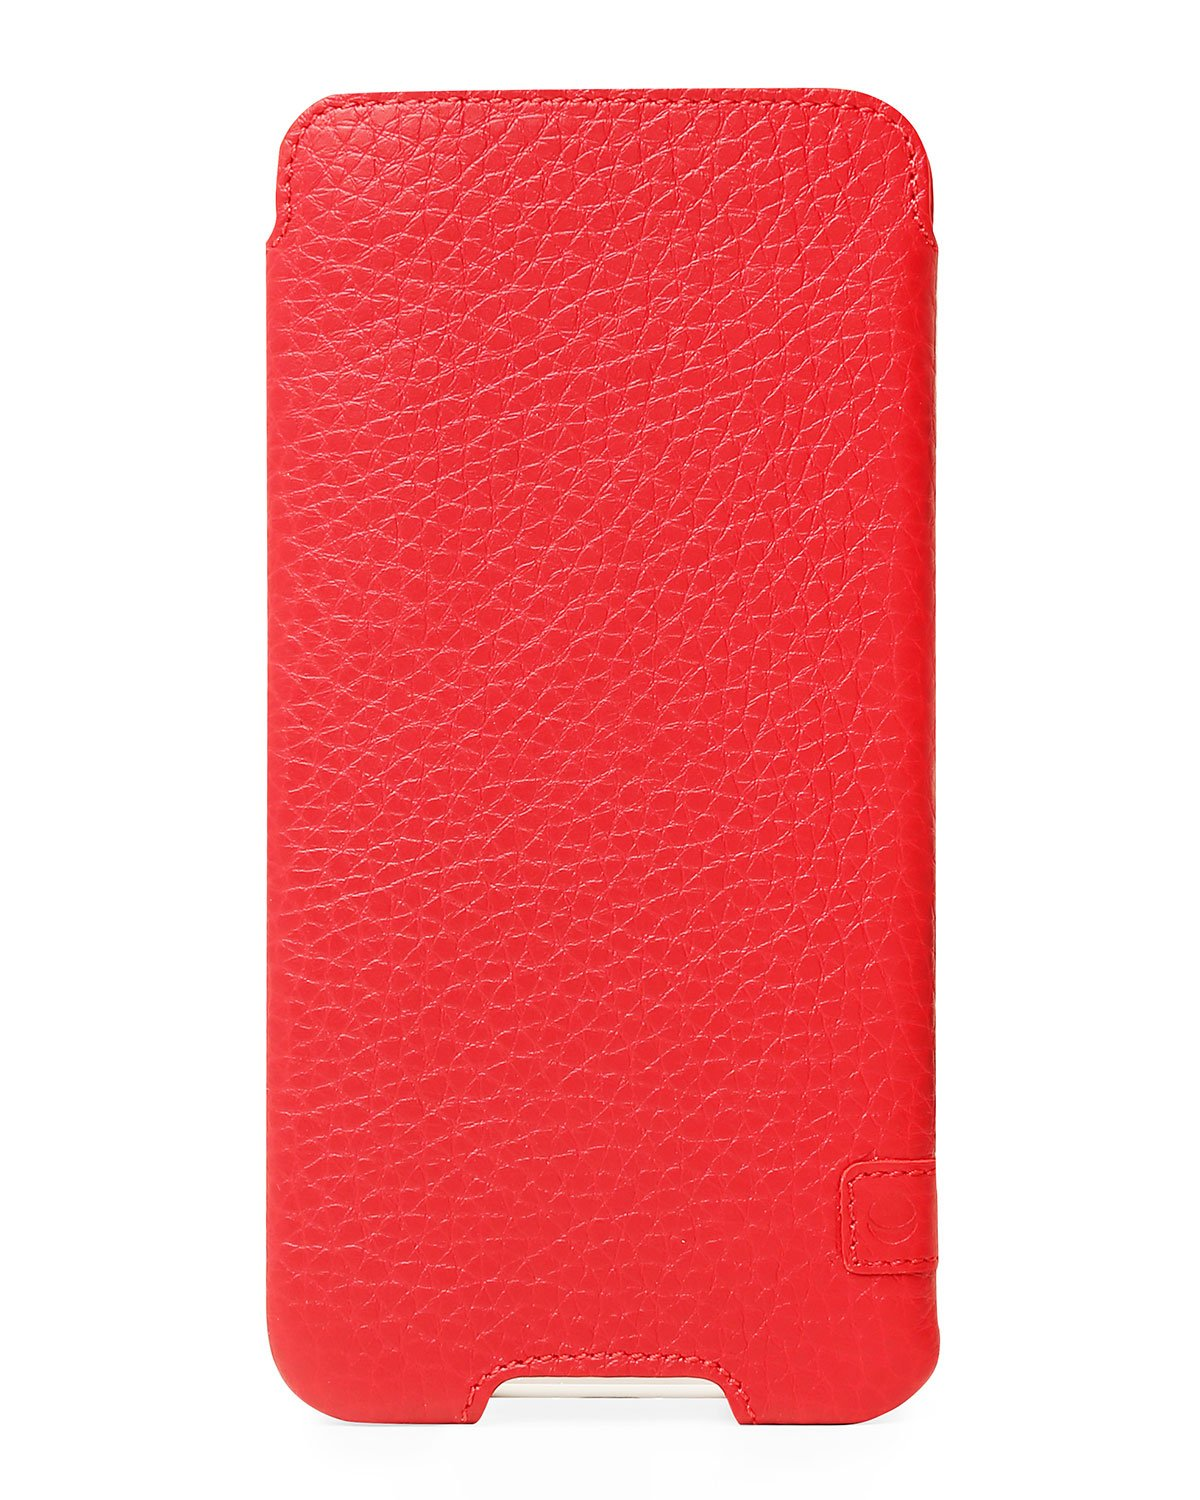 beyzacases iphone x  : Beyza Cases Zero a Thin Leather Sleeve Pouch Case for ...